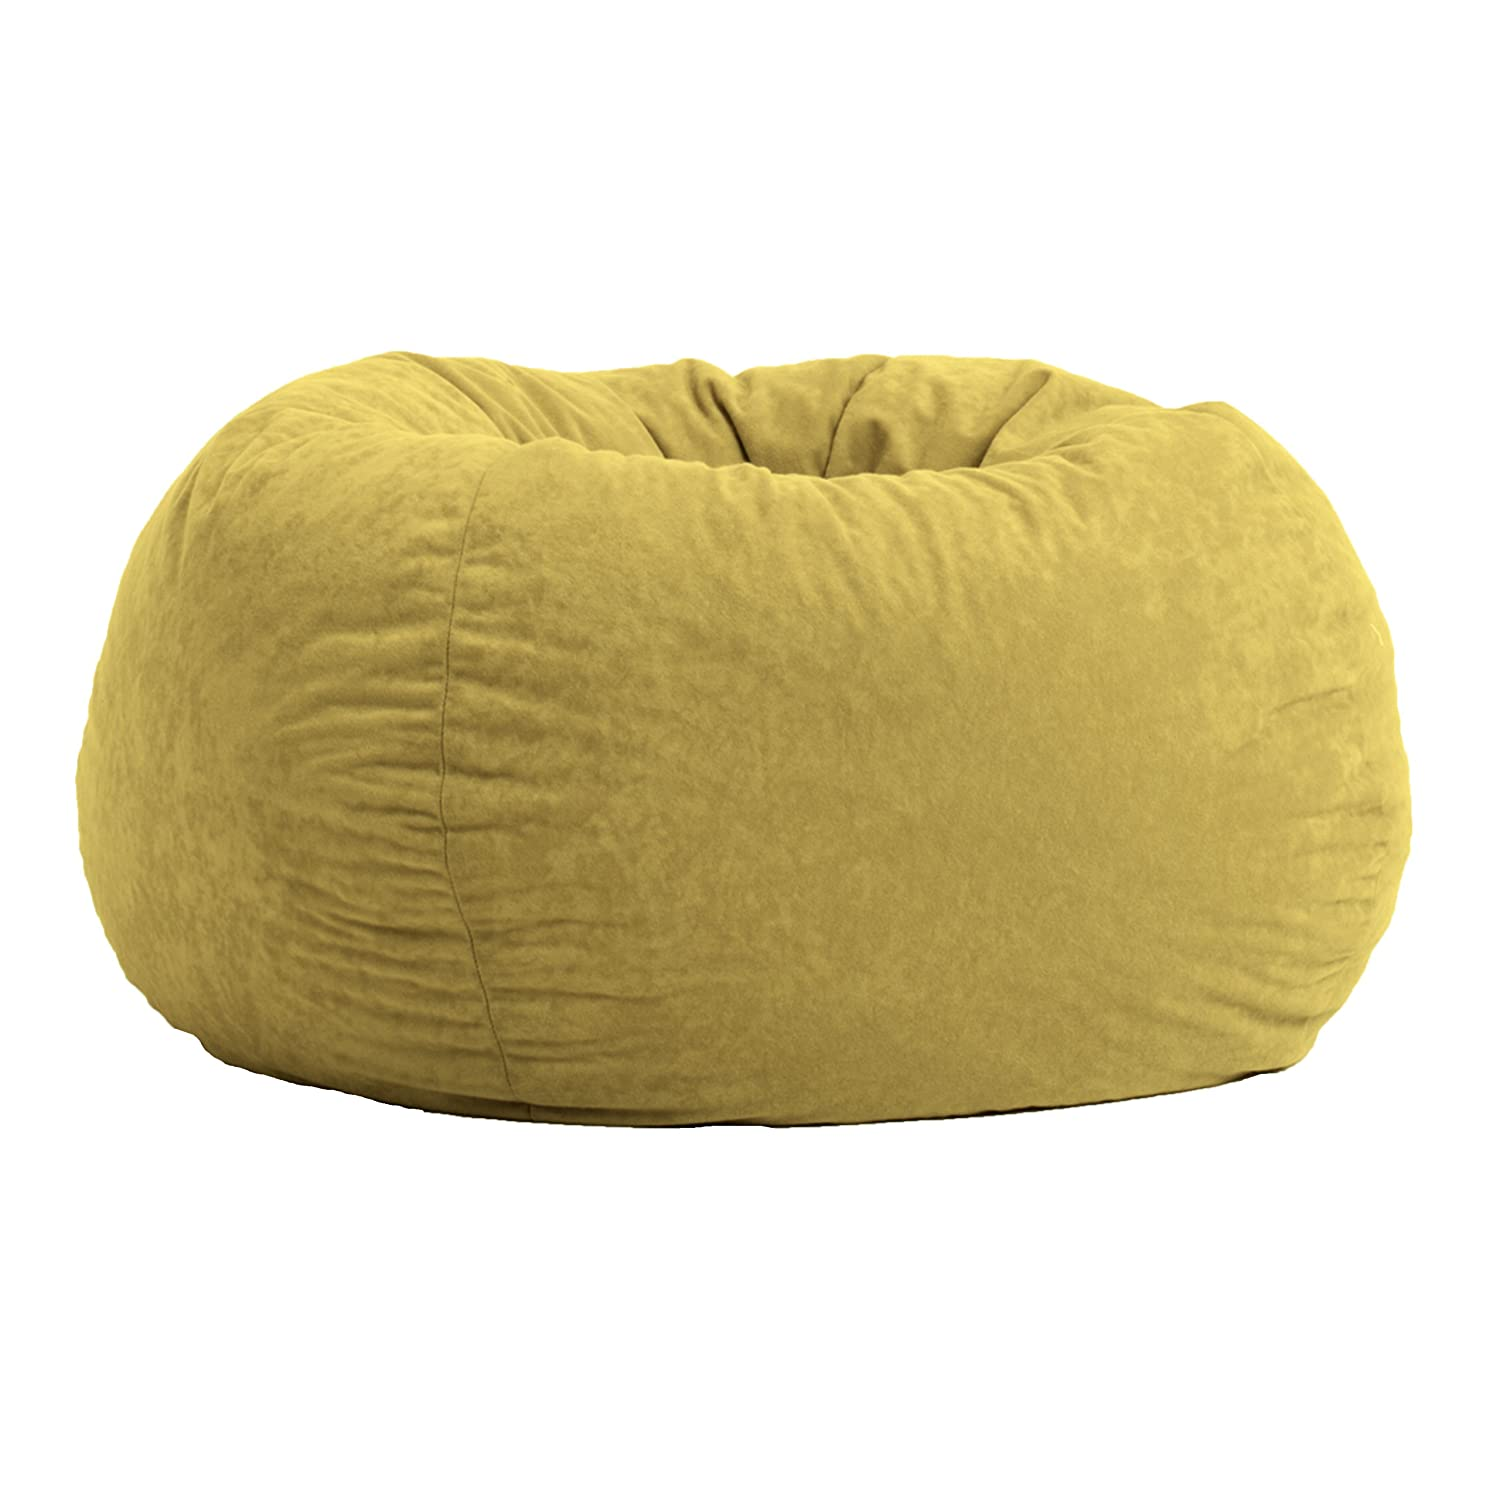 Comfort Research Classic Bean Bag in Comfort Suede, Sand Dune